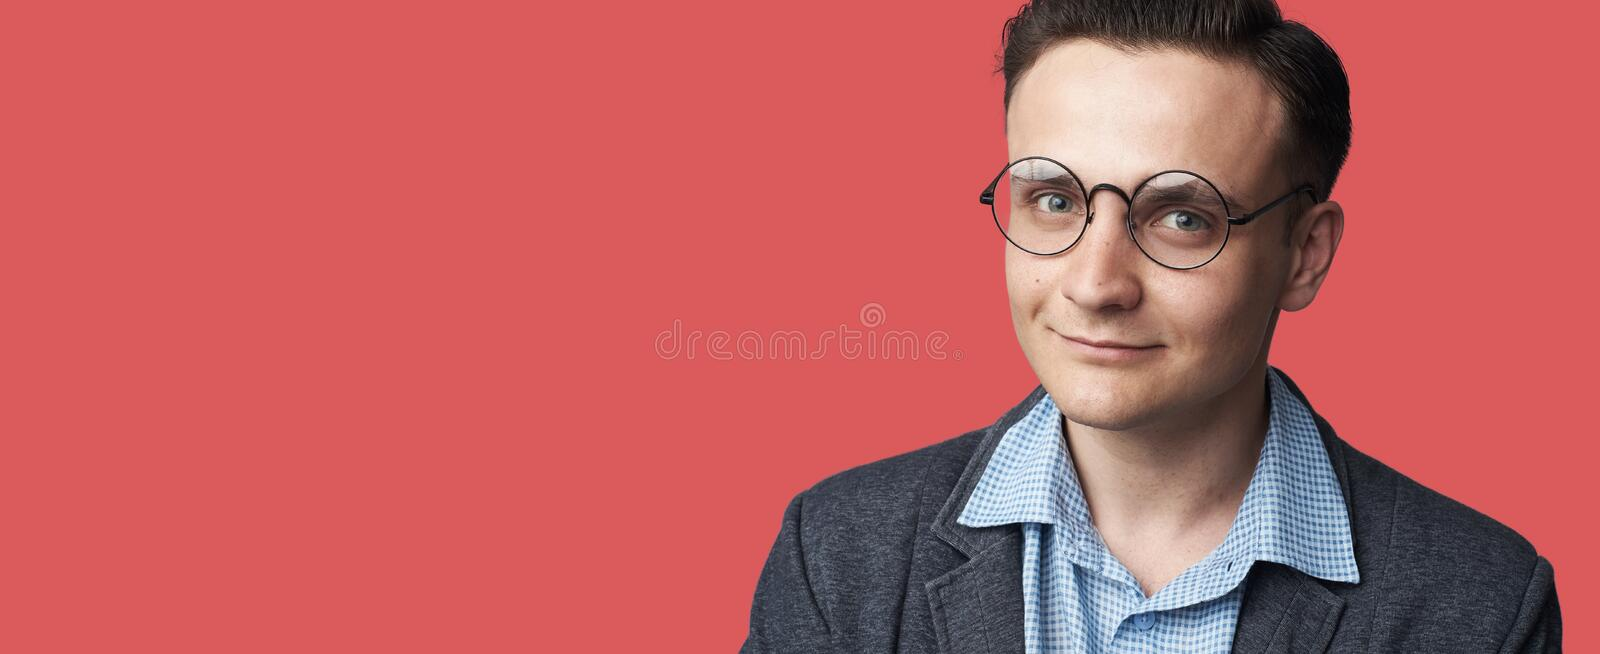 Portrait of young smiling handsome man wearing spectacles royalty free stock photo